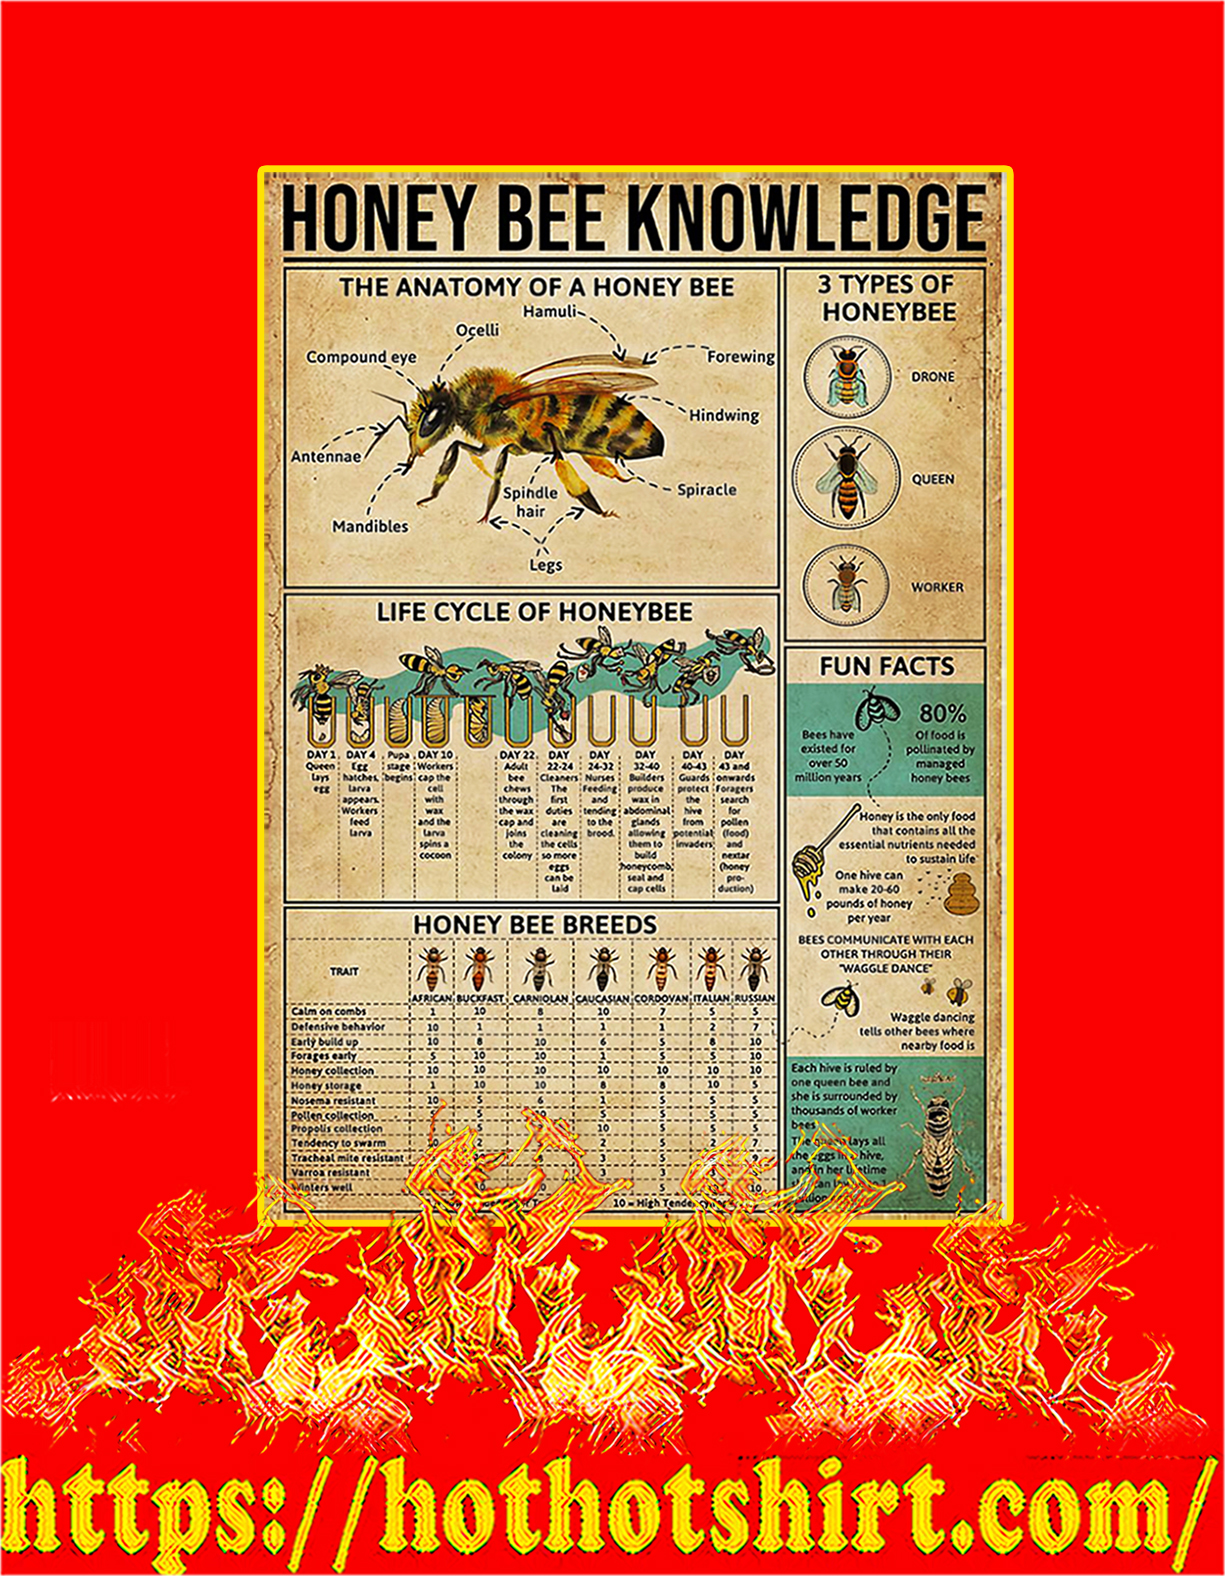 Honey bee knowledge poster - A4